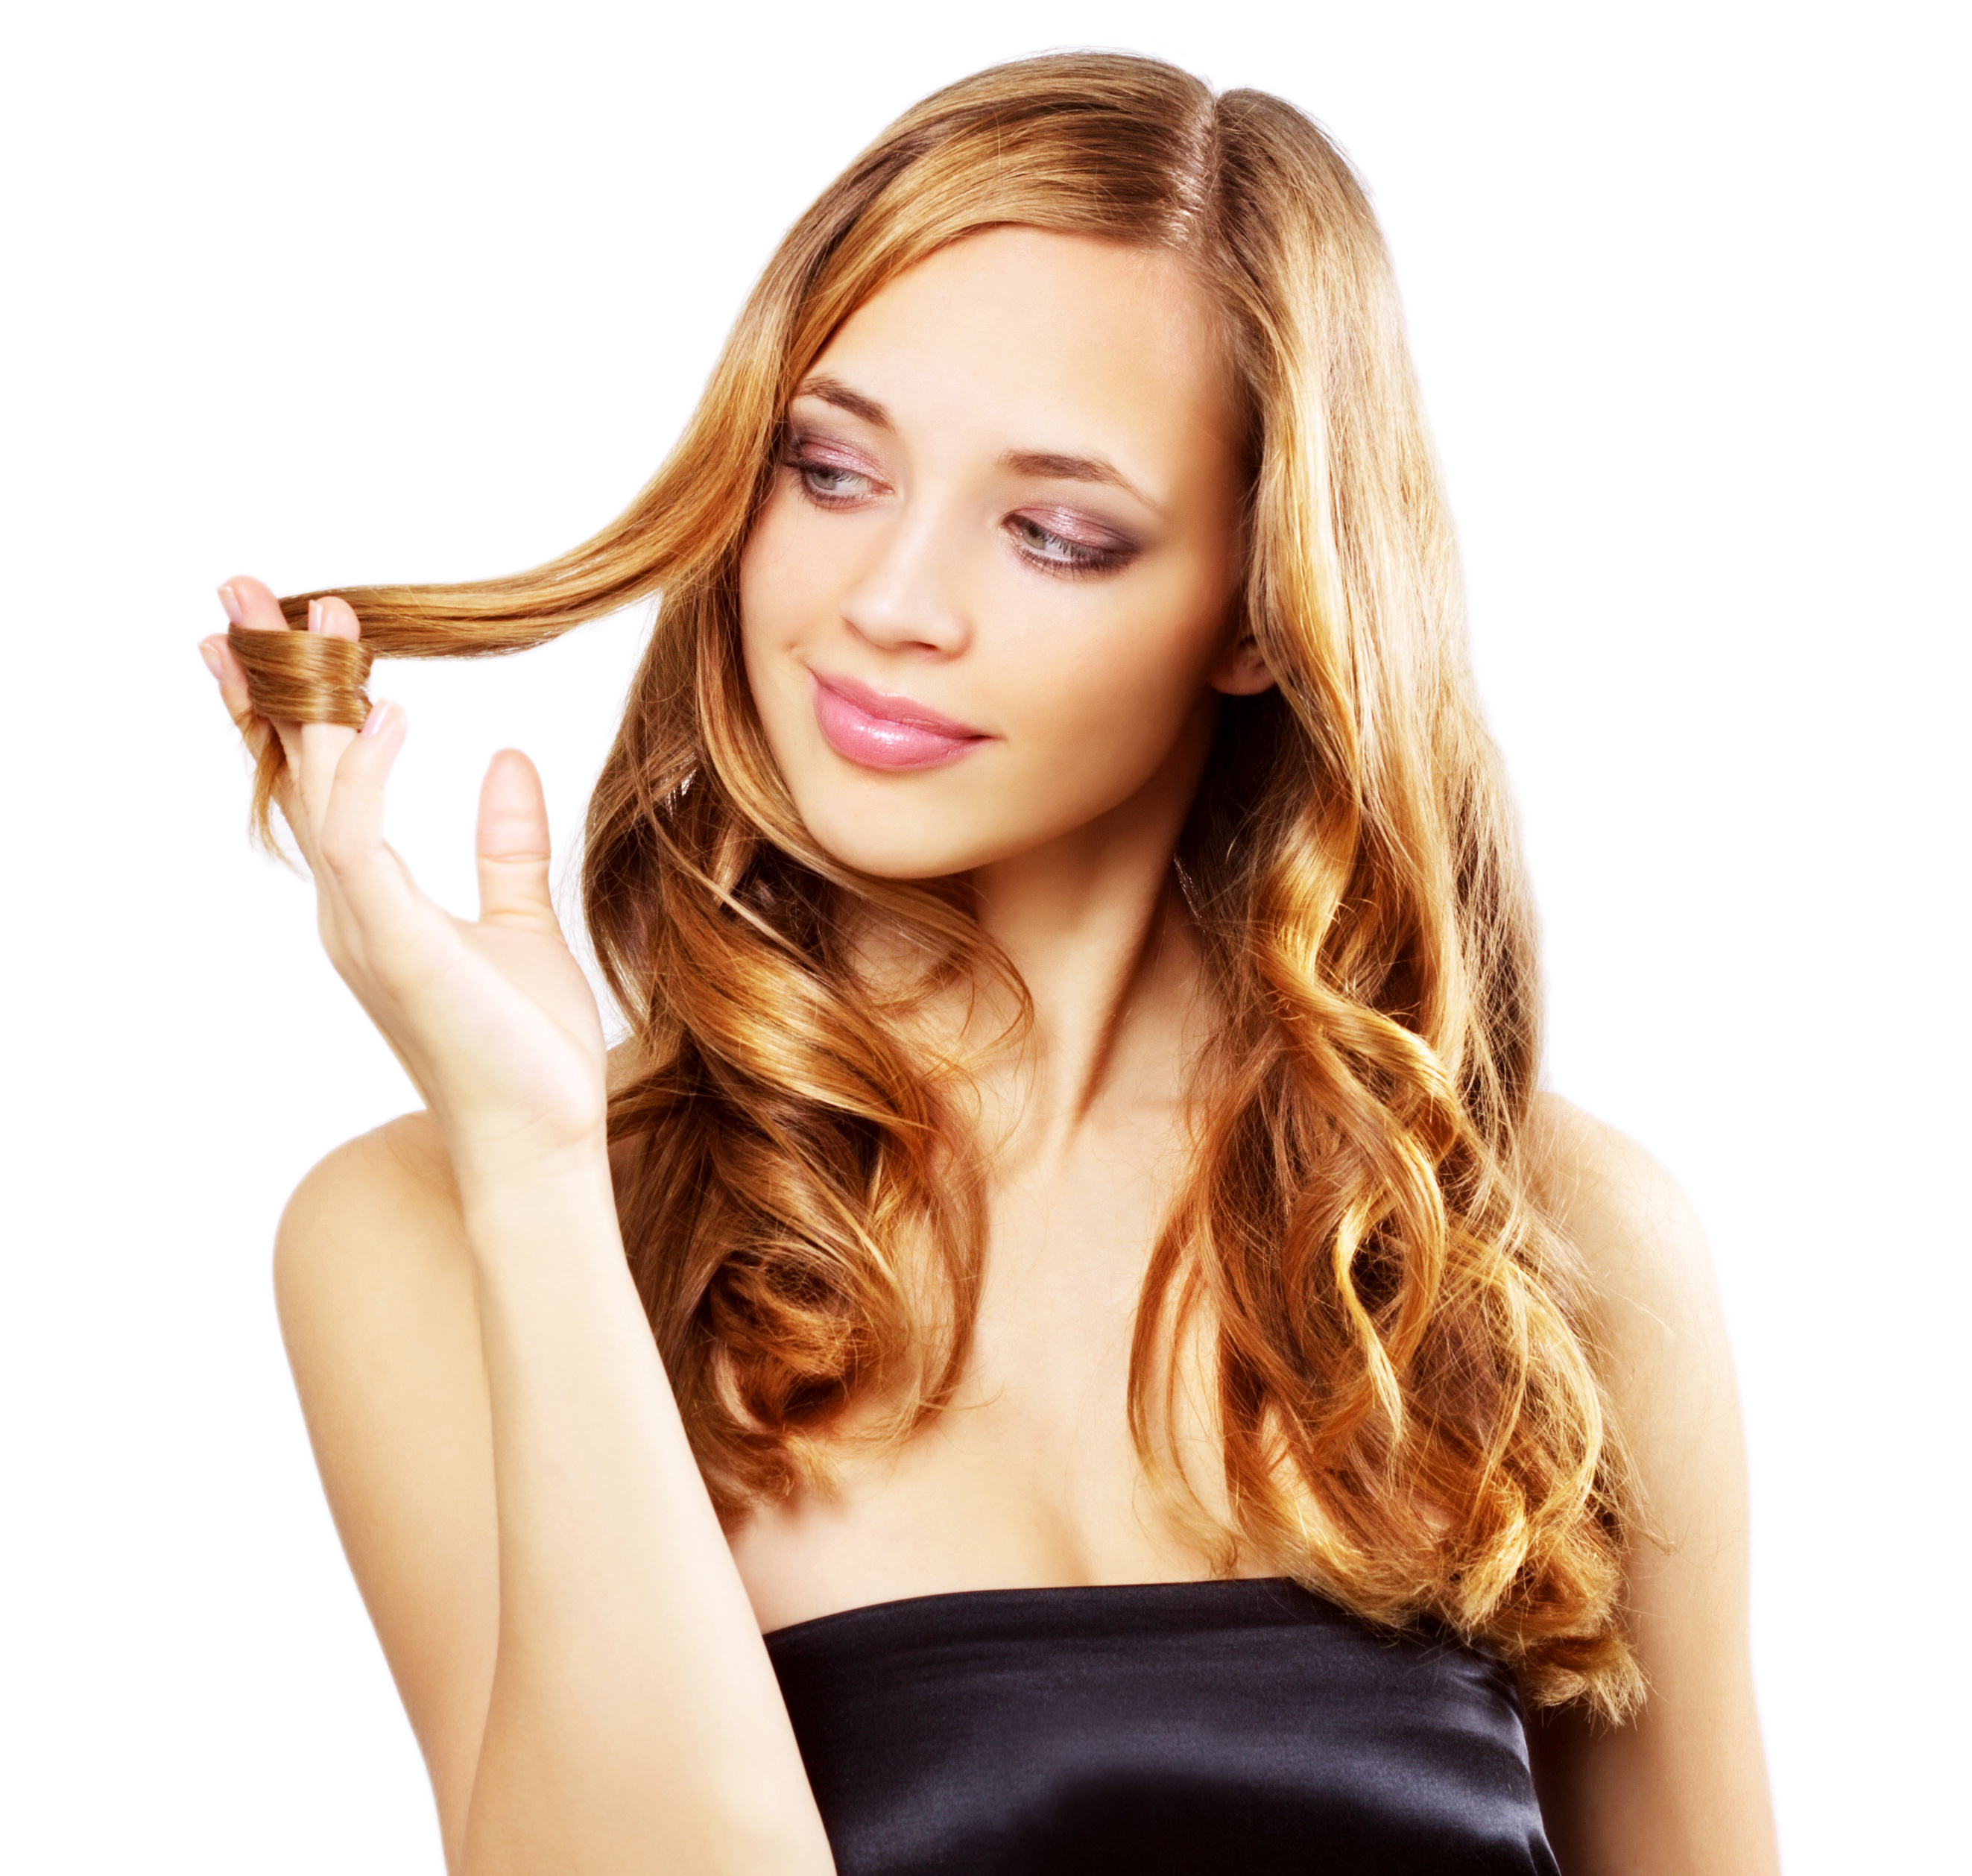 Marvelous 5 Styling Tips For Wavy And Curly Hair Blog Keranique Hairstyles For Women Draintrainus